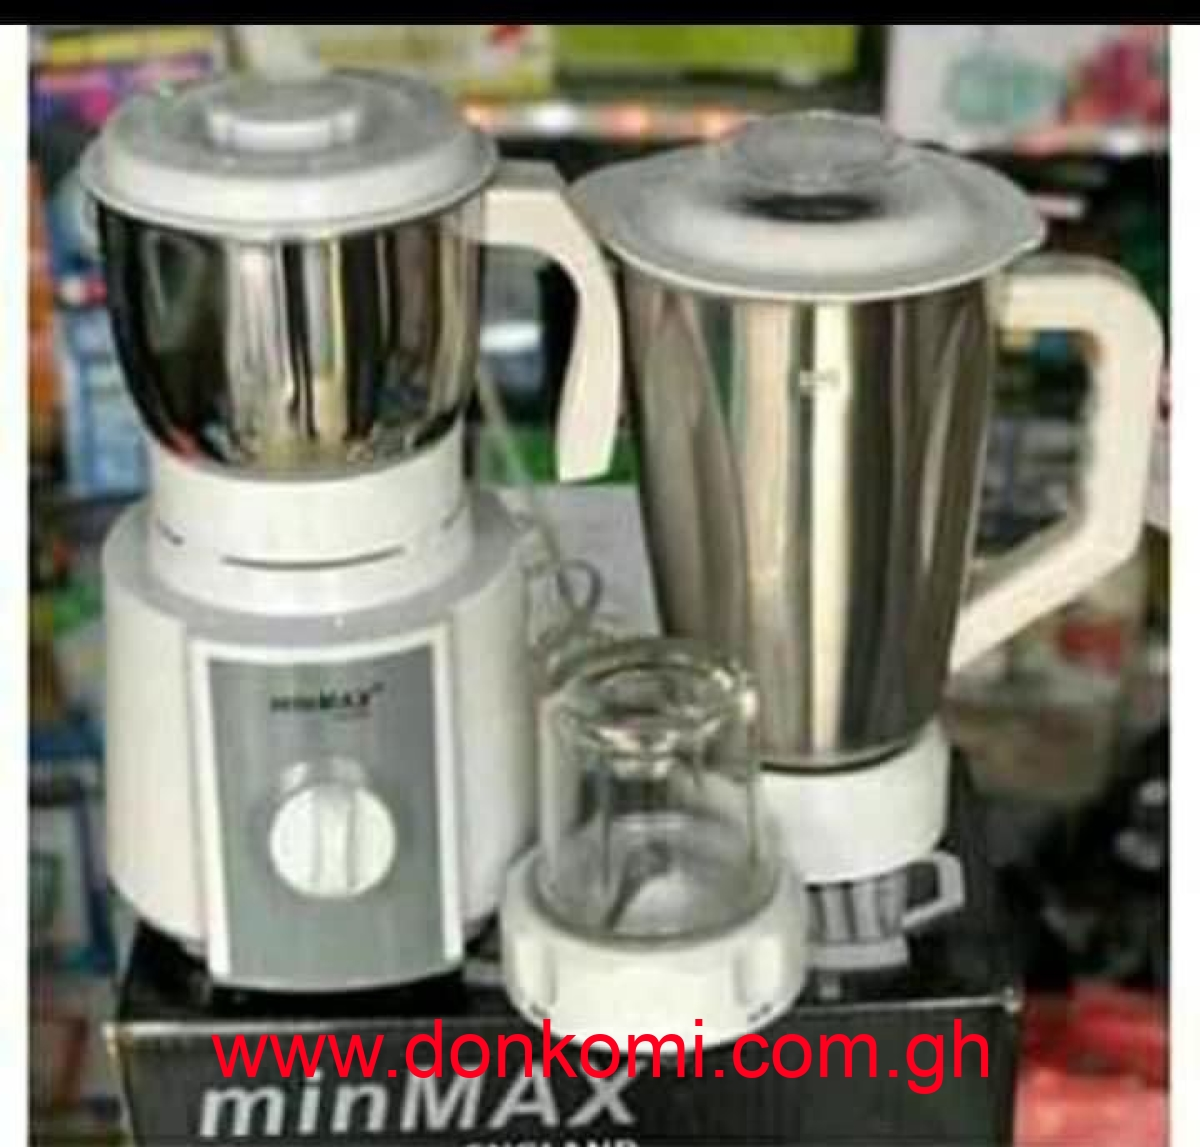 Blenders n juice makers